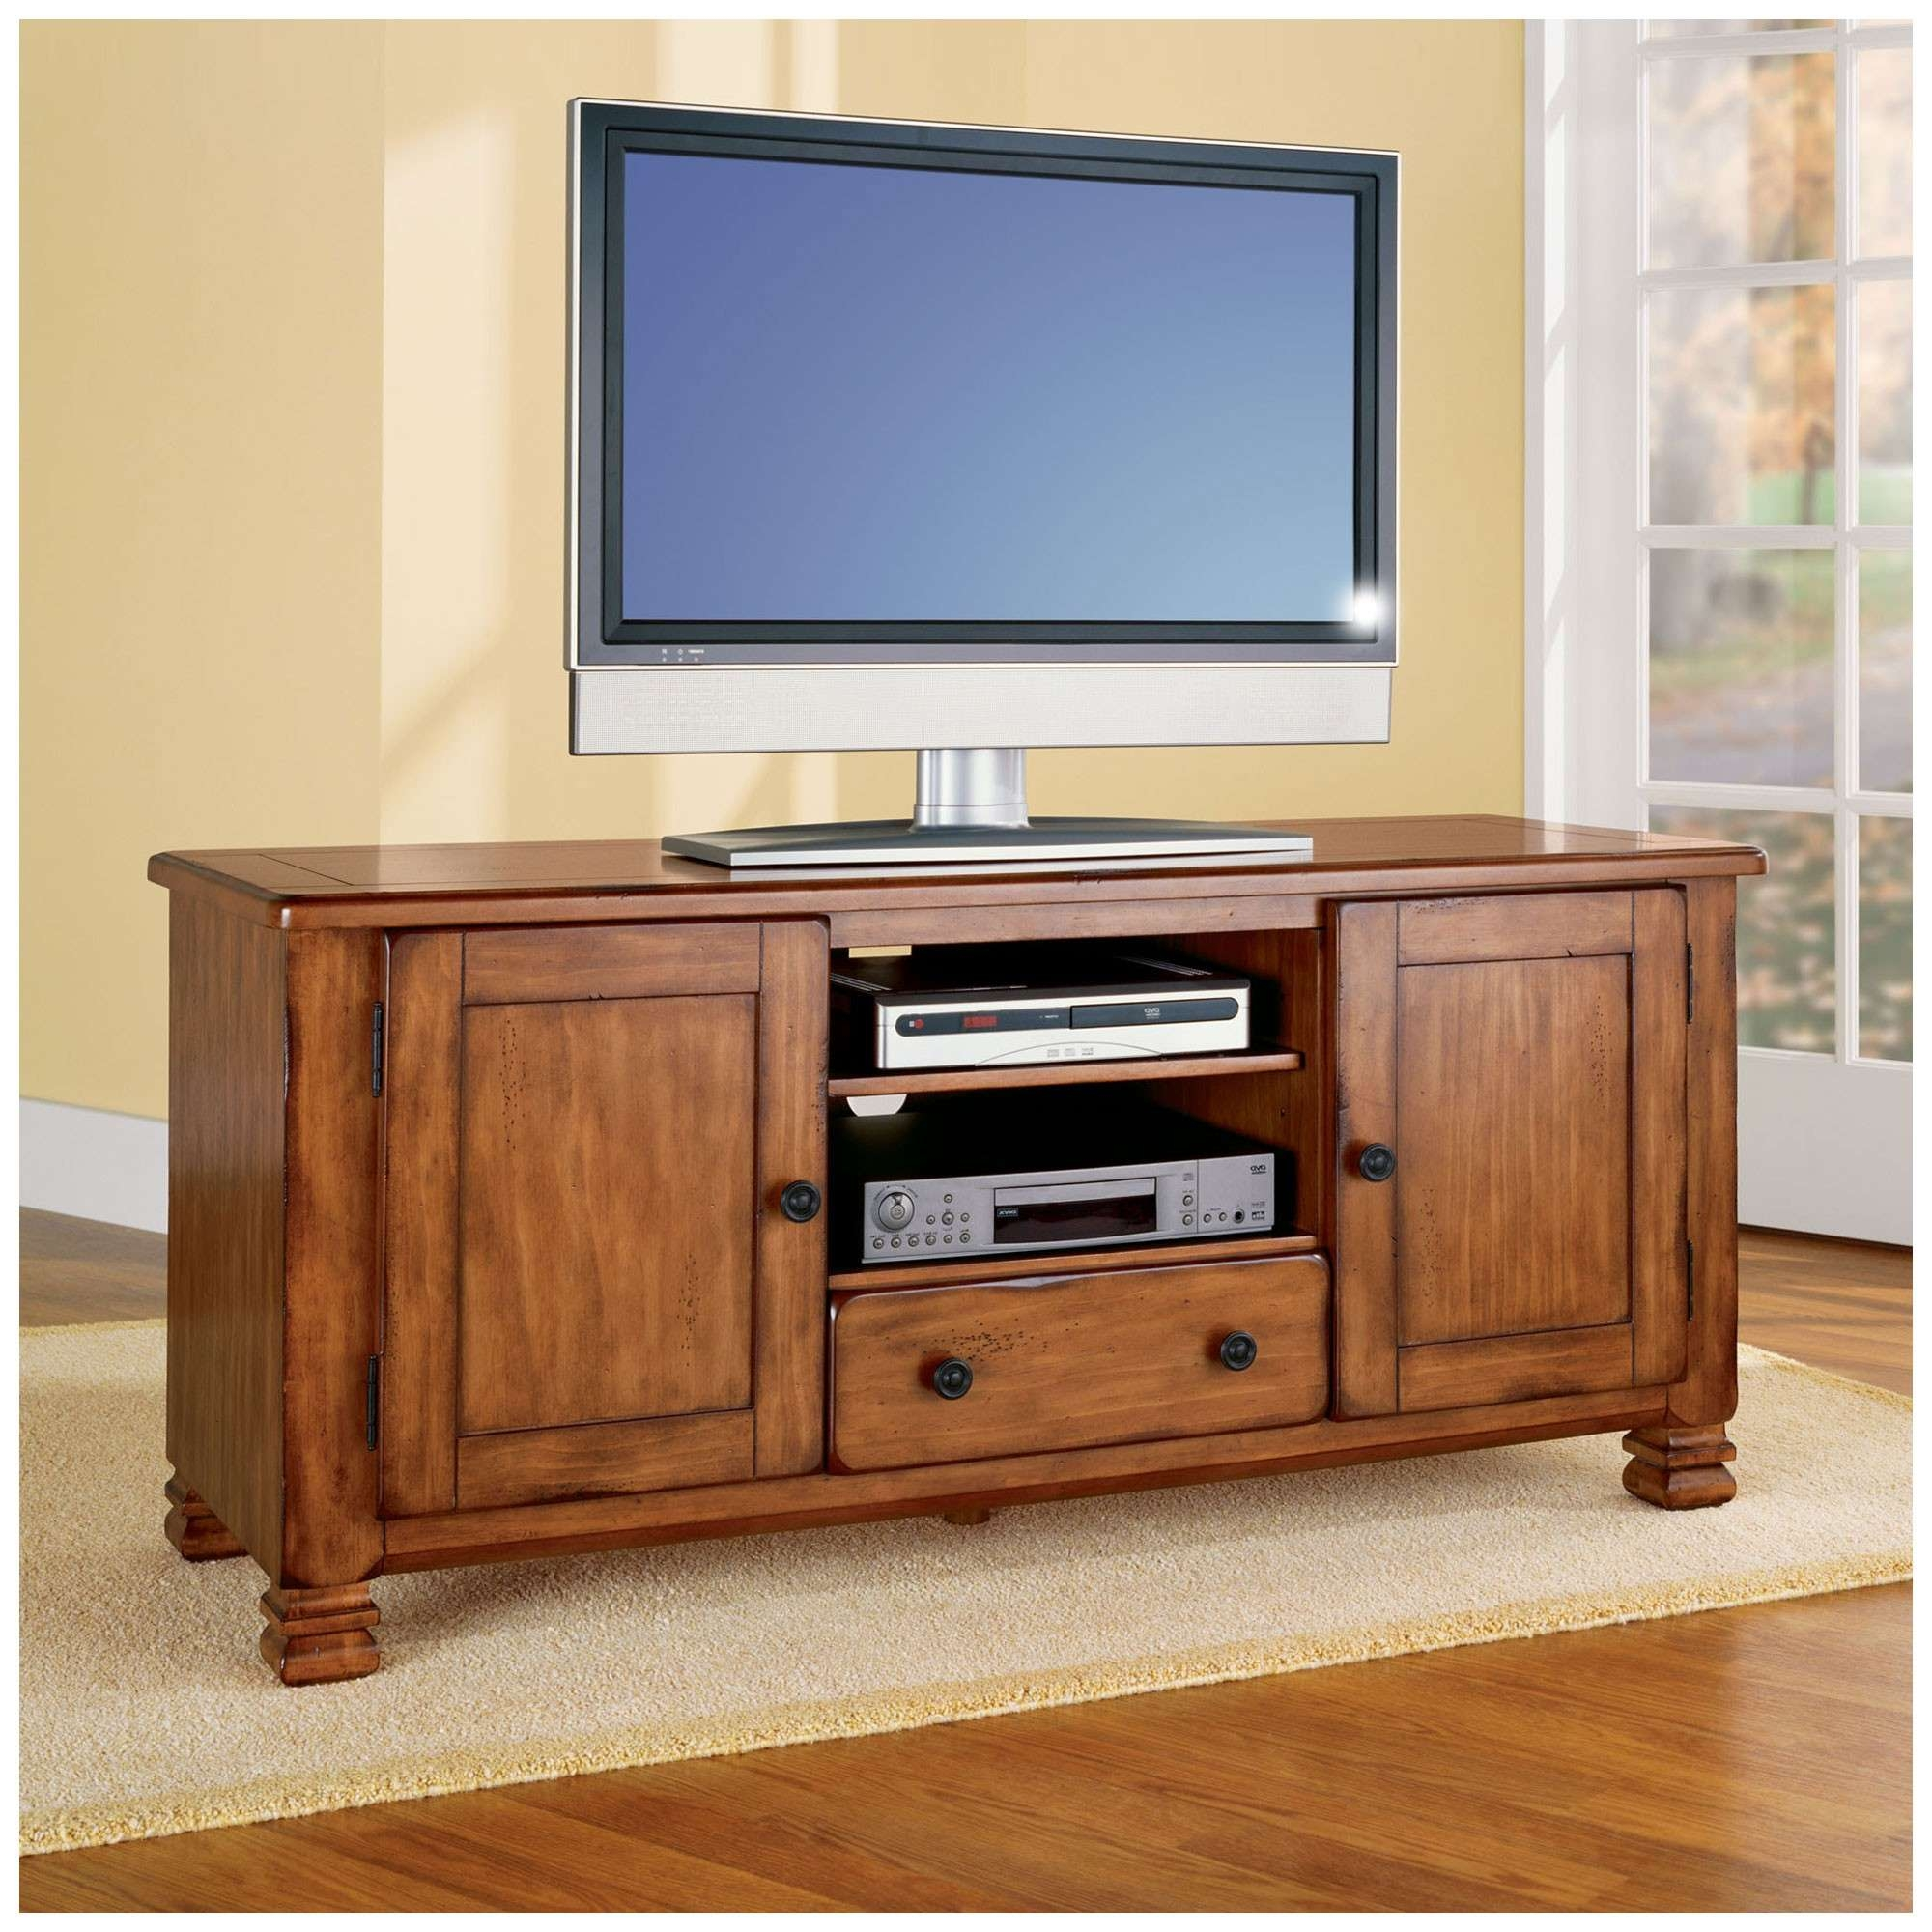 Fresh Cheap Cherry Wood Tv Stands Cabinets #17103 For Cheap Oak Tv Stands (View 4 of 15)